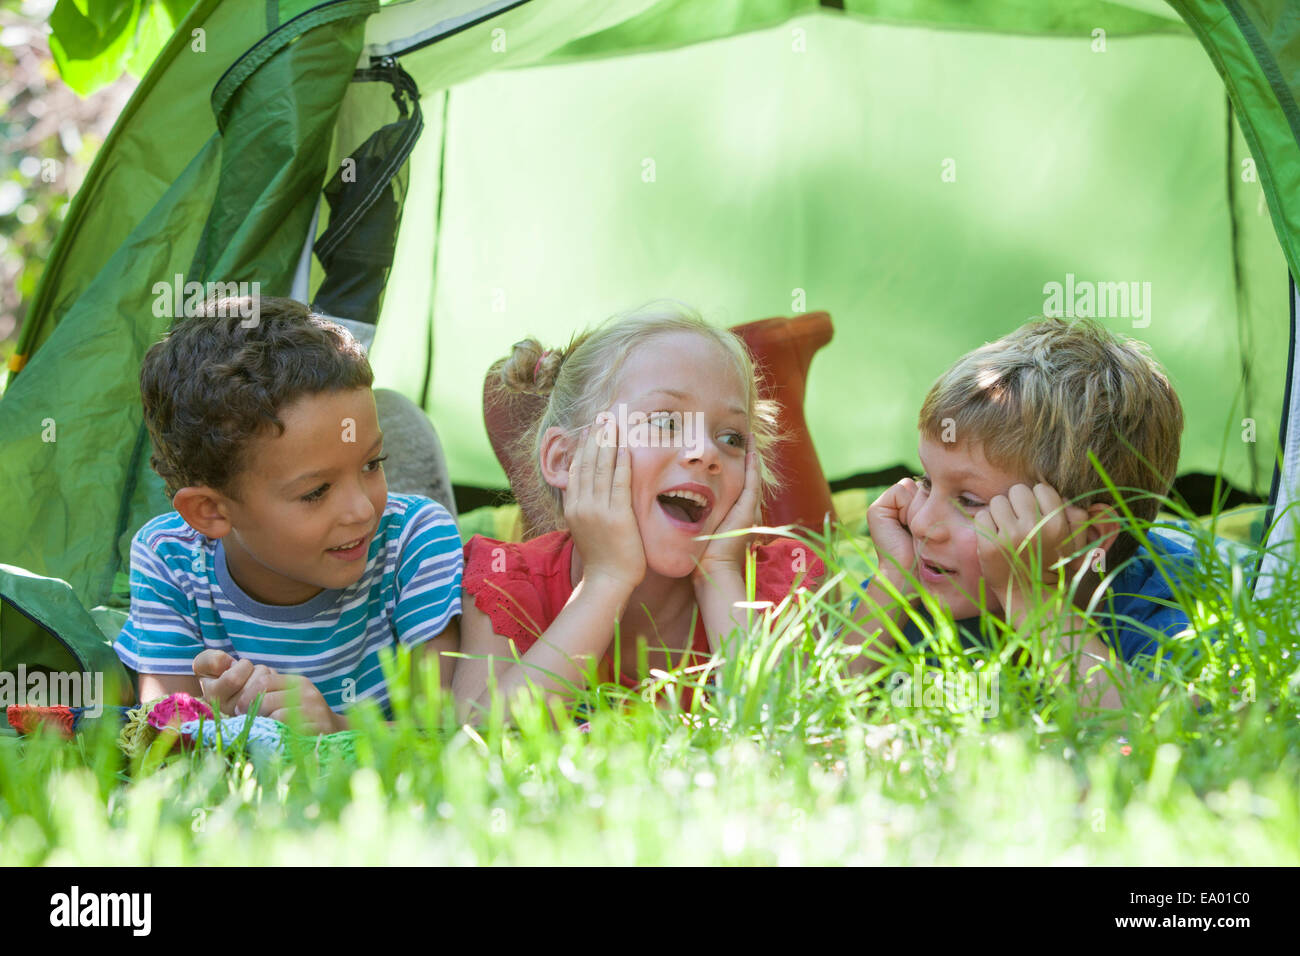 Three children lying chatting in garden tent - Stock Image